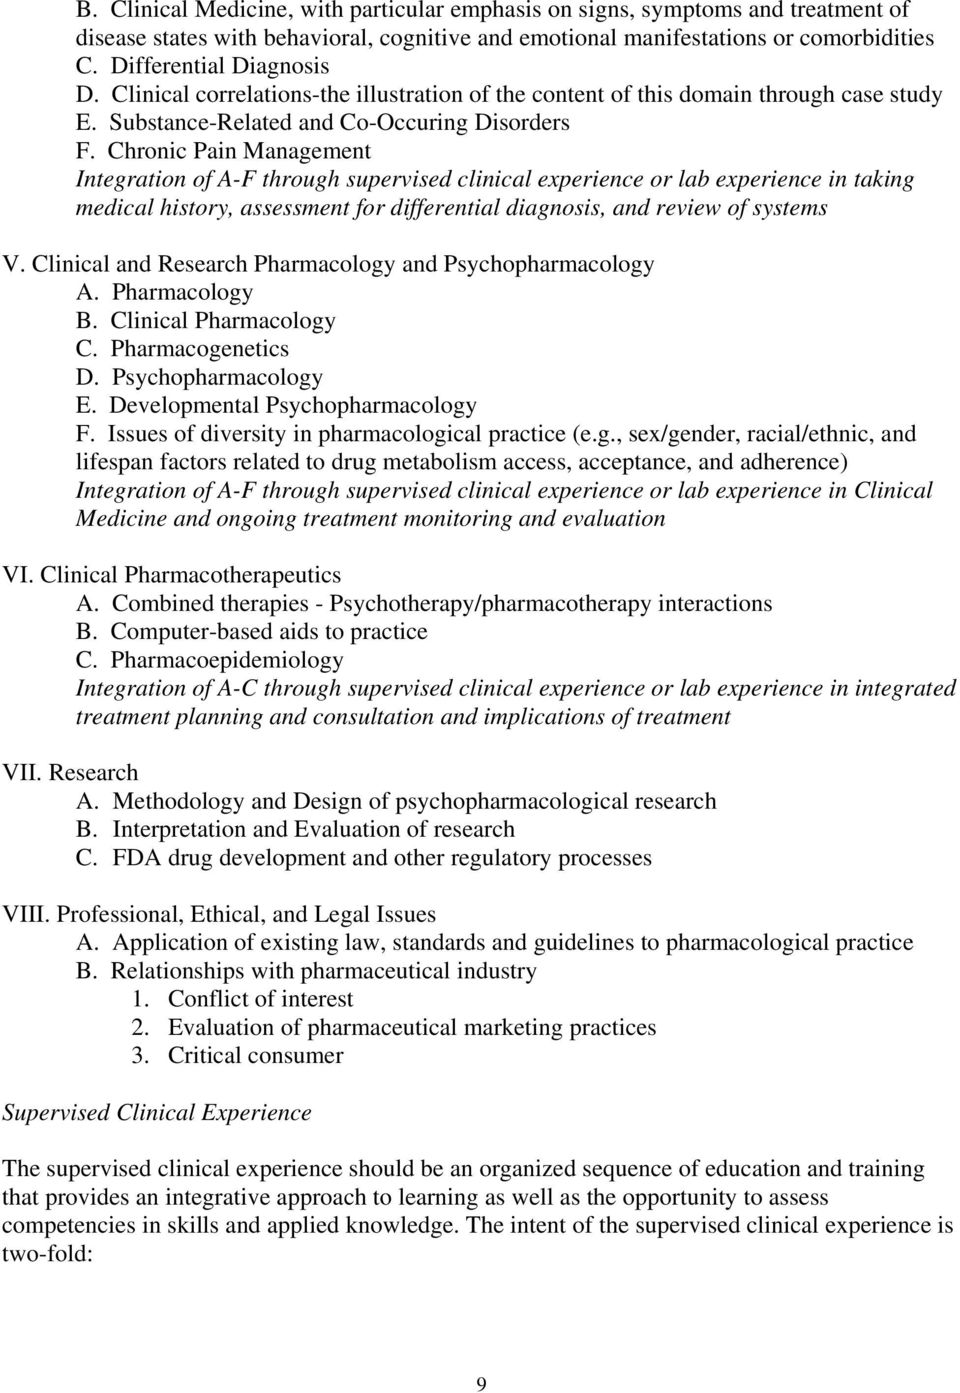 Chronic Pain Management Integration of A-F through supervised clinical experience or lab experience in taking medical history, assessment for differential diagnosis, and review of systems V.